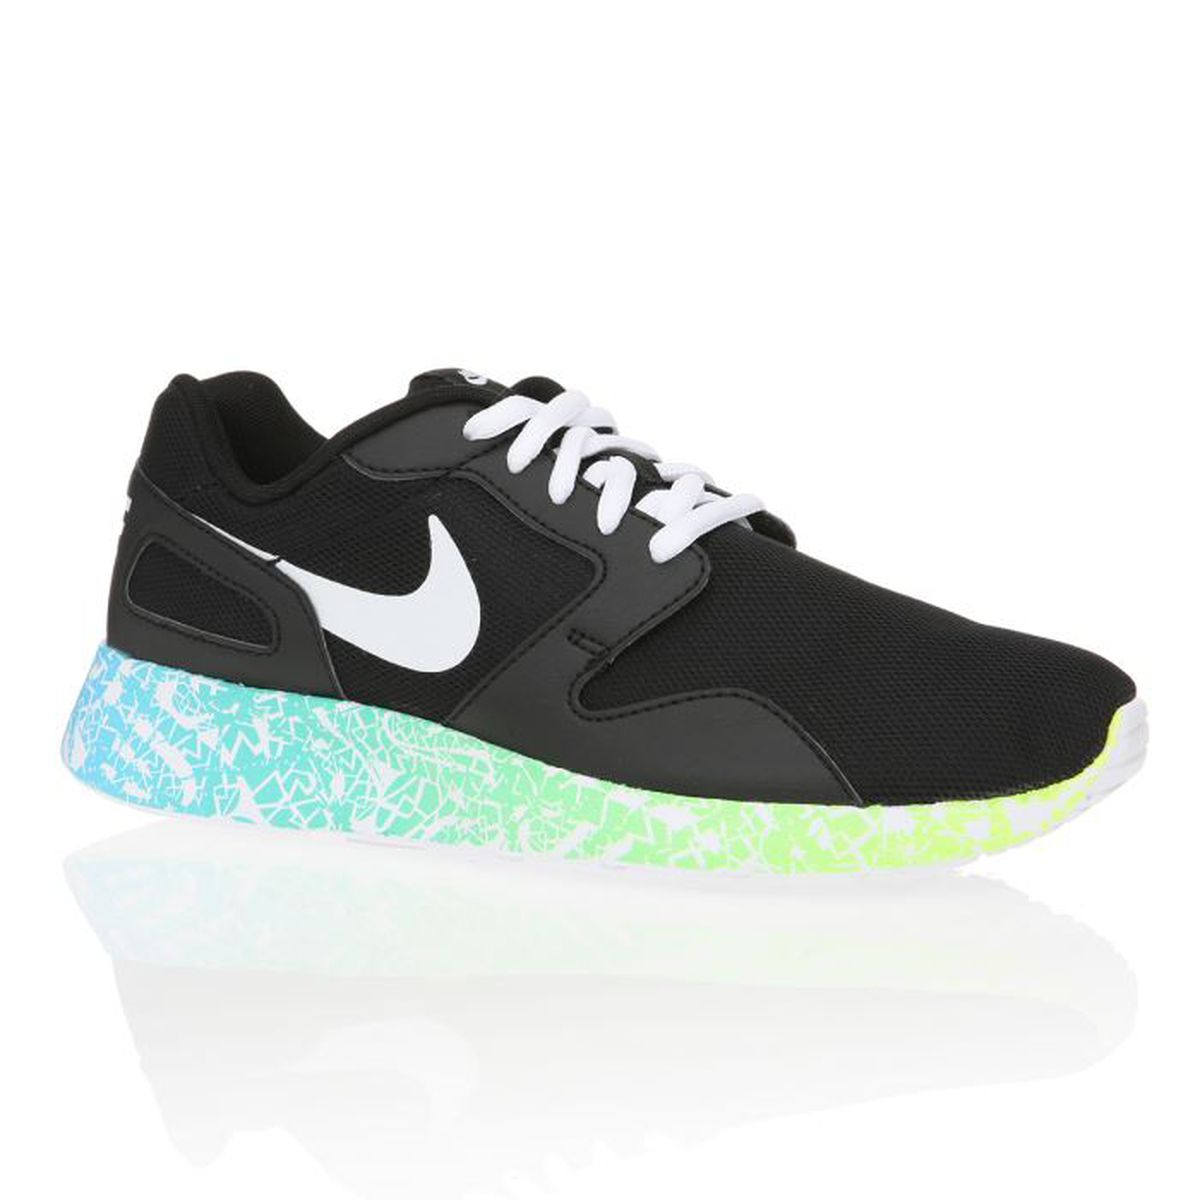 nike baskets kaishi run femme femme noir et blanc achat vente nike baskets kaishi run femme. Black Bedroom Furniture Sets. Home Design Ideas